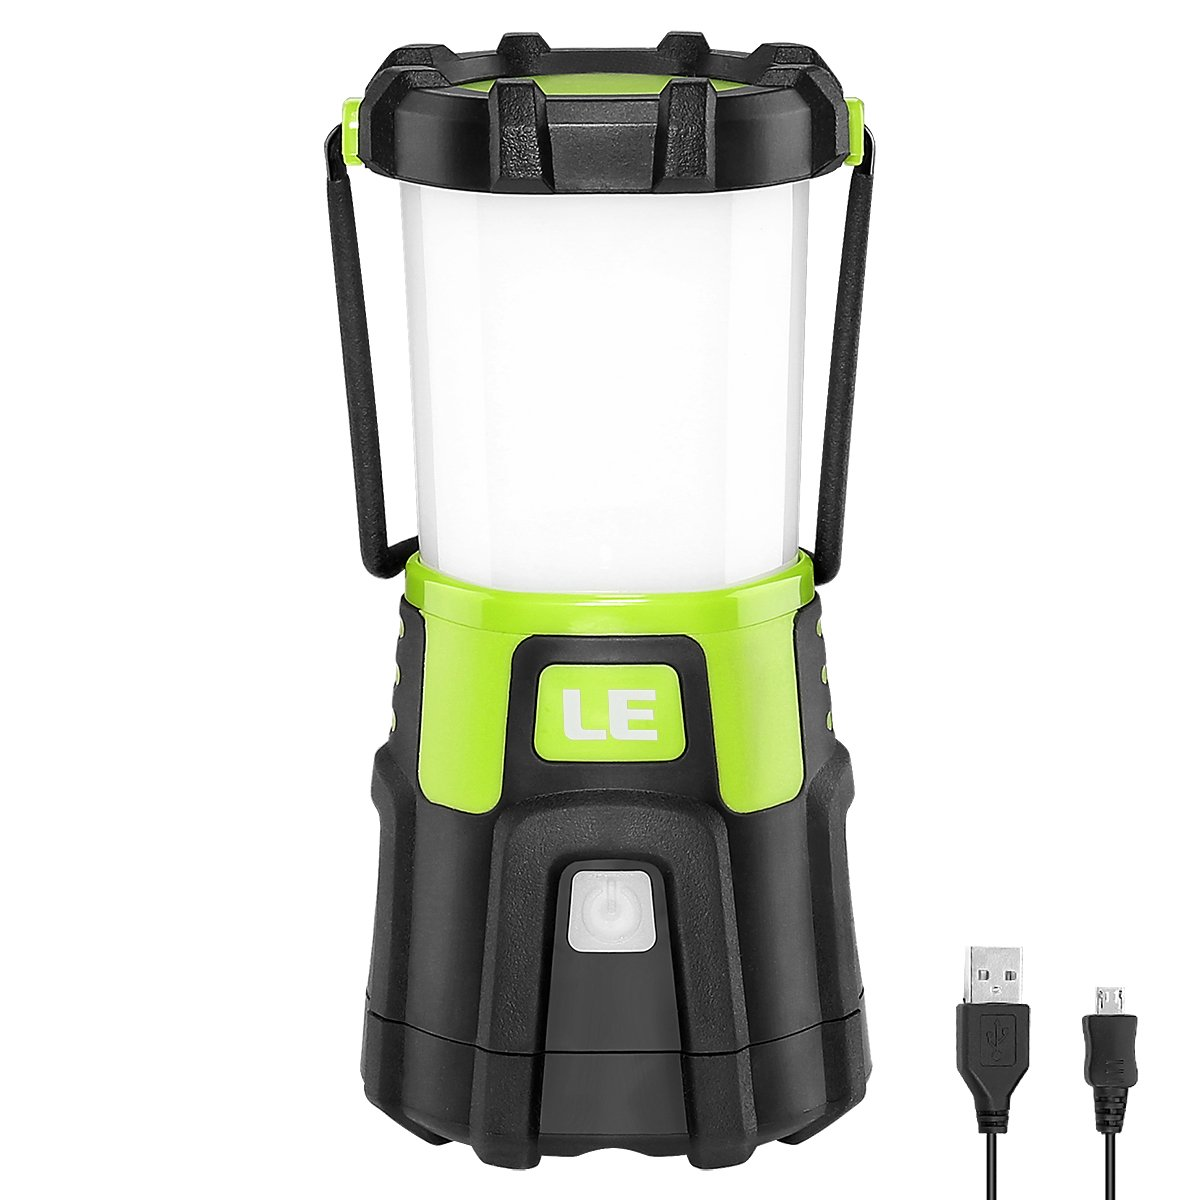 LE Rechargeable LED Camping Lantern, Portable, Dimmable, Adjustable Color Temperature and Brightness, USB Output Power Bank for Outdoor Activities, Camping, Hiking, Emergency and More